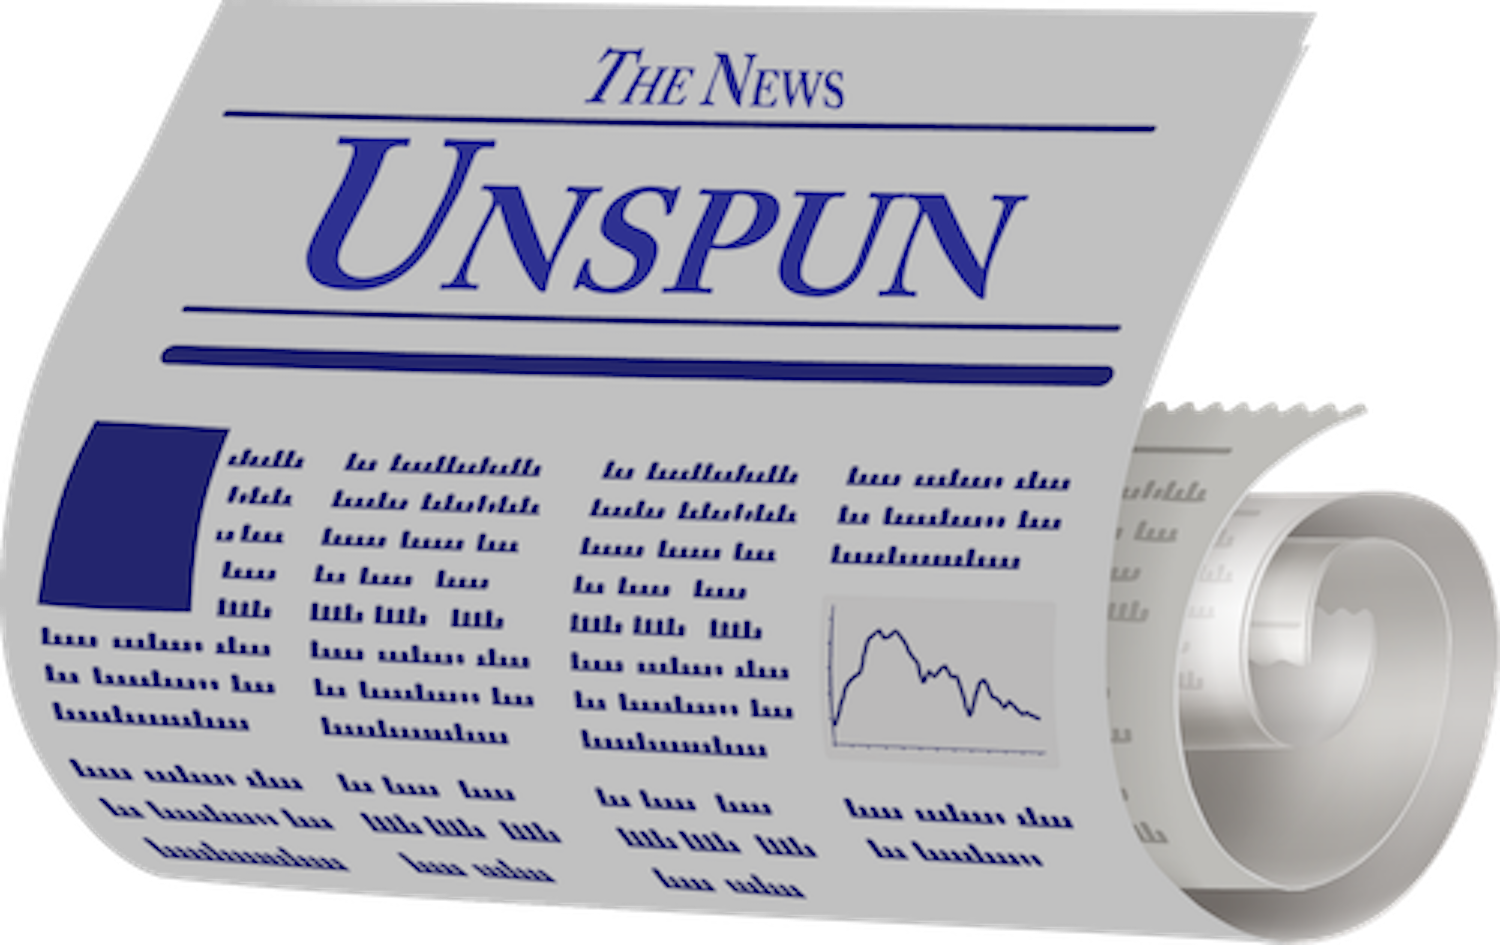 The News Unspun